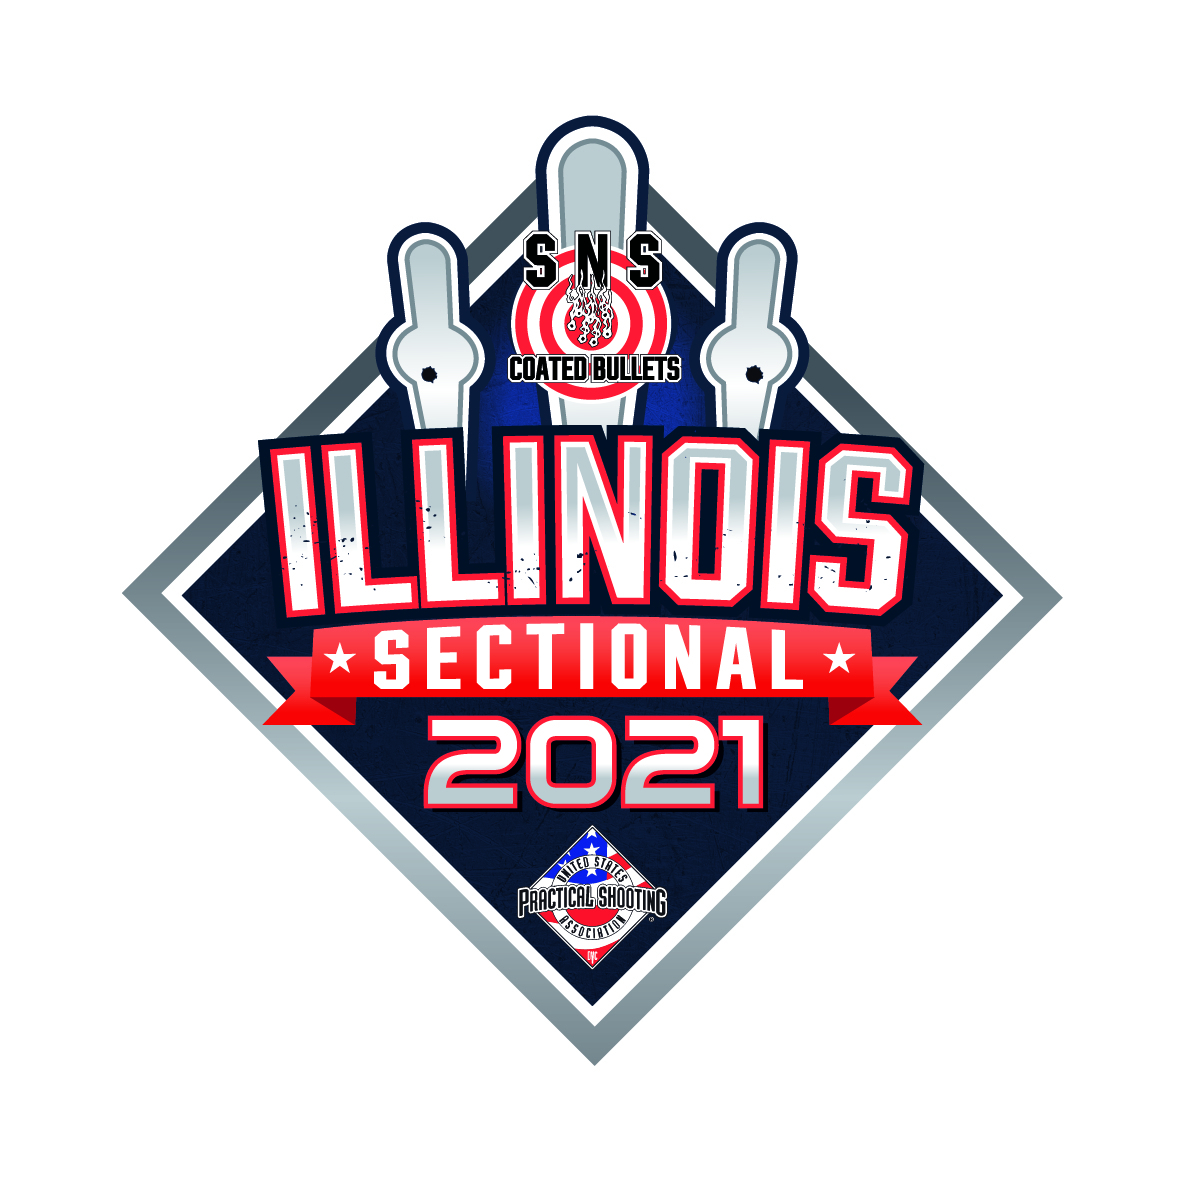 2021 Illinois Sectional